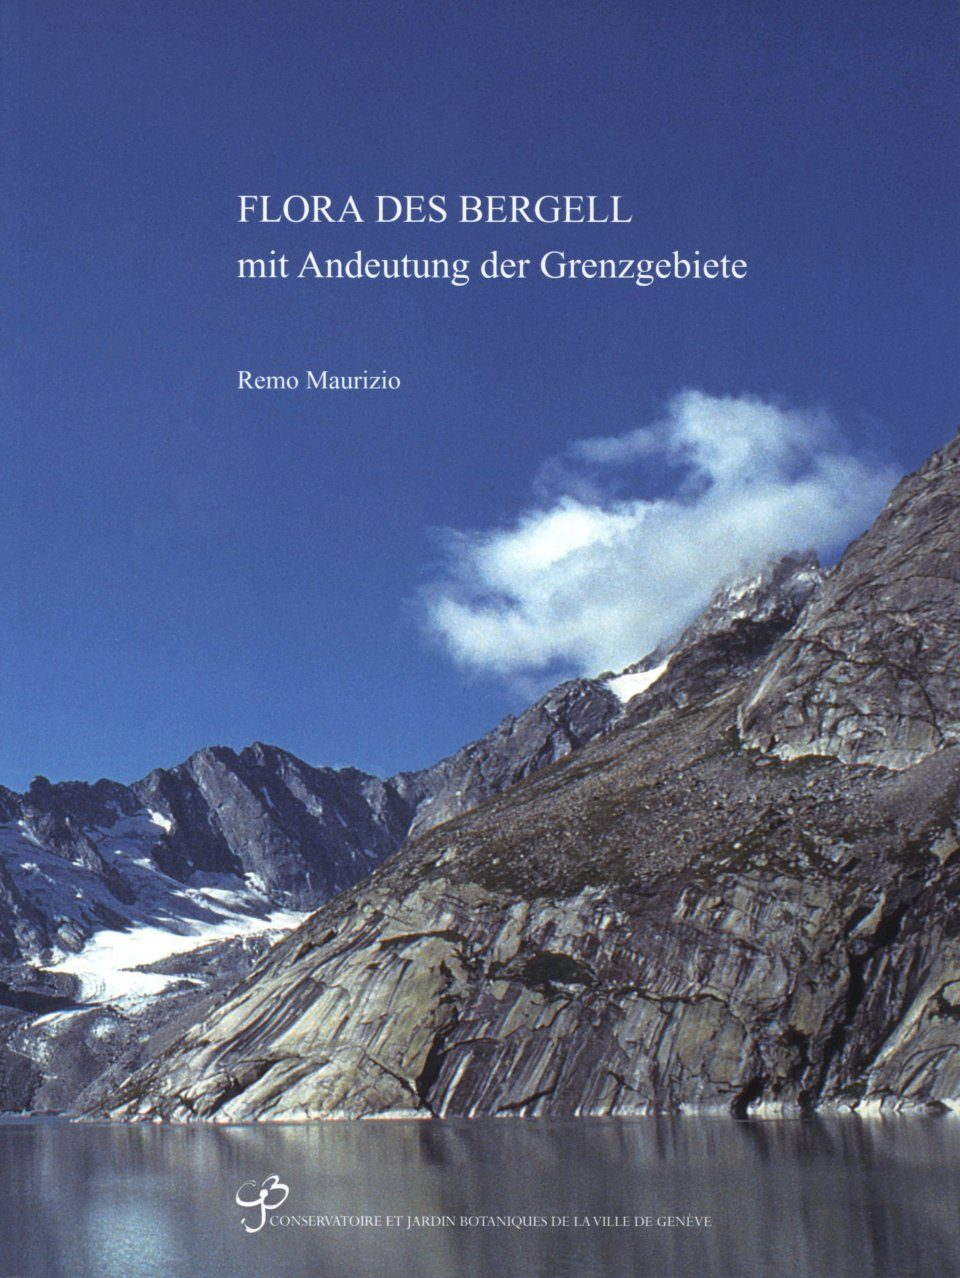 Boissiera, Volume 62: Flora des Bergell: Mit Andeutung der Grenzgebiete [Flora of the Bergell: With Indication of the Border Areas]